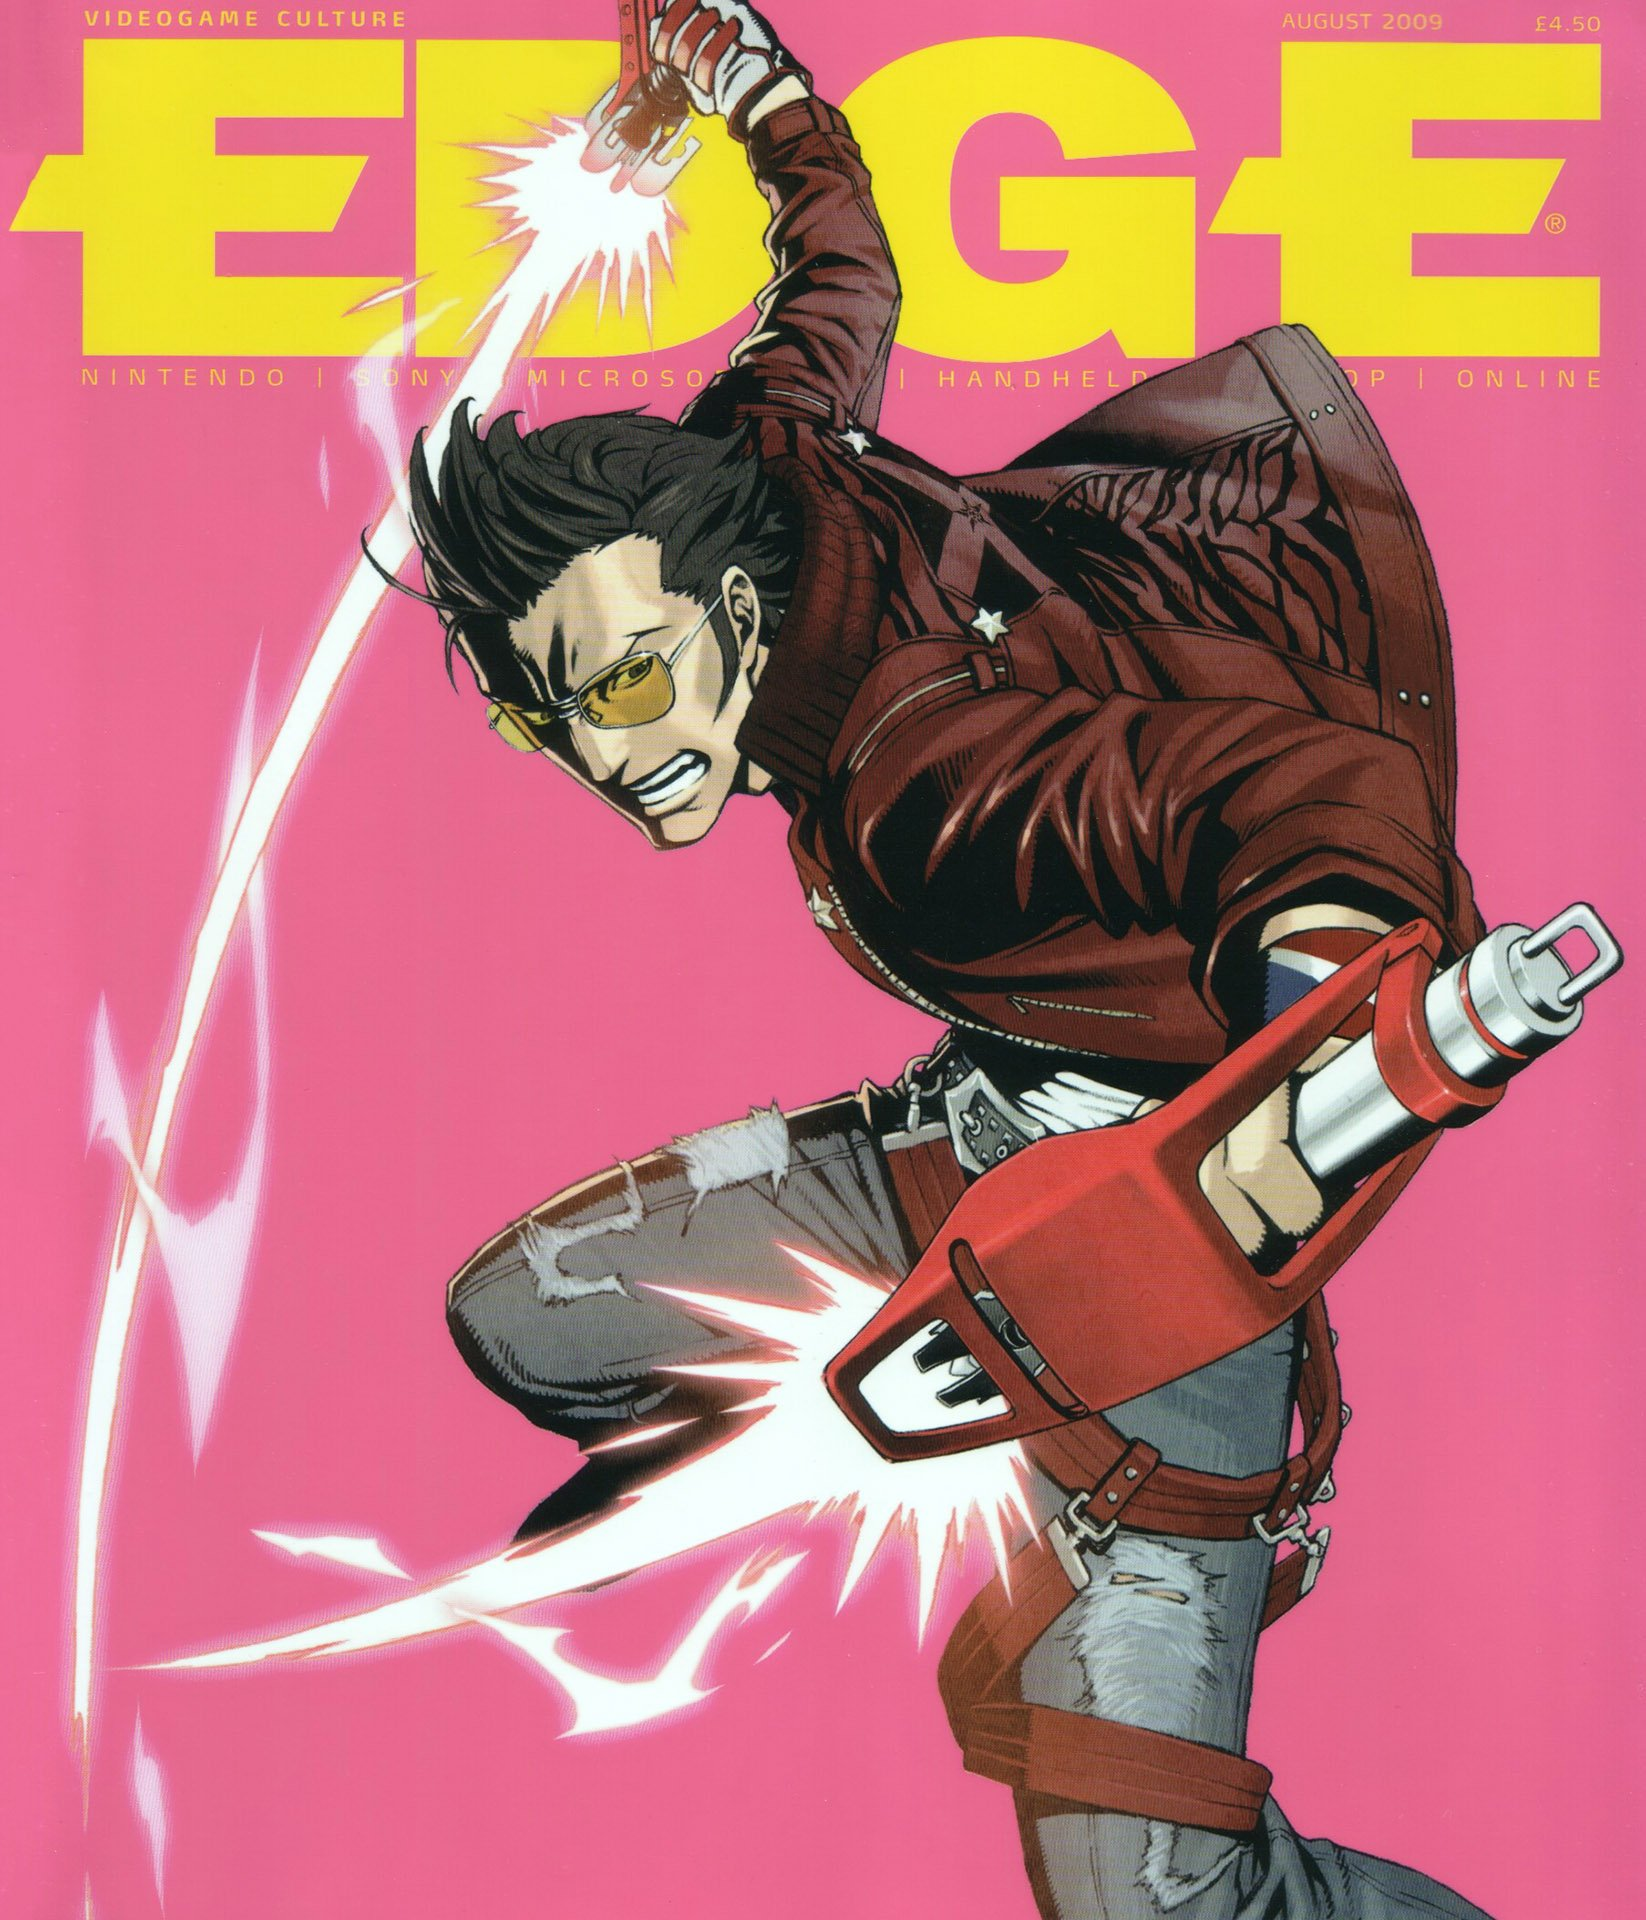 Edge 204 (August 2009) (subscriber edition)